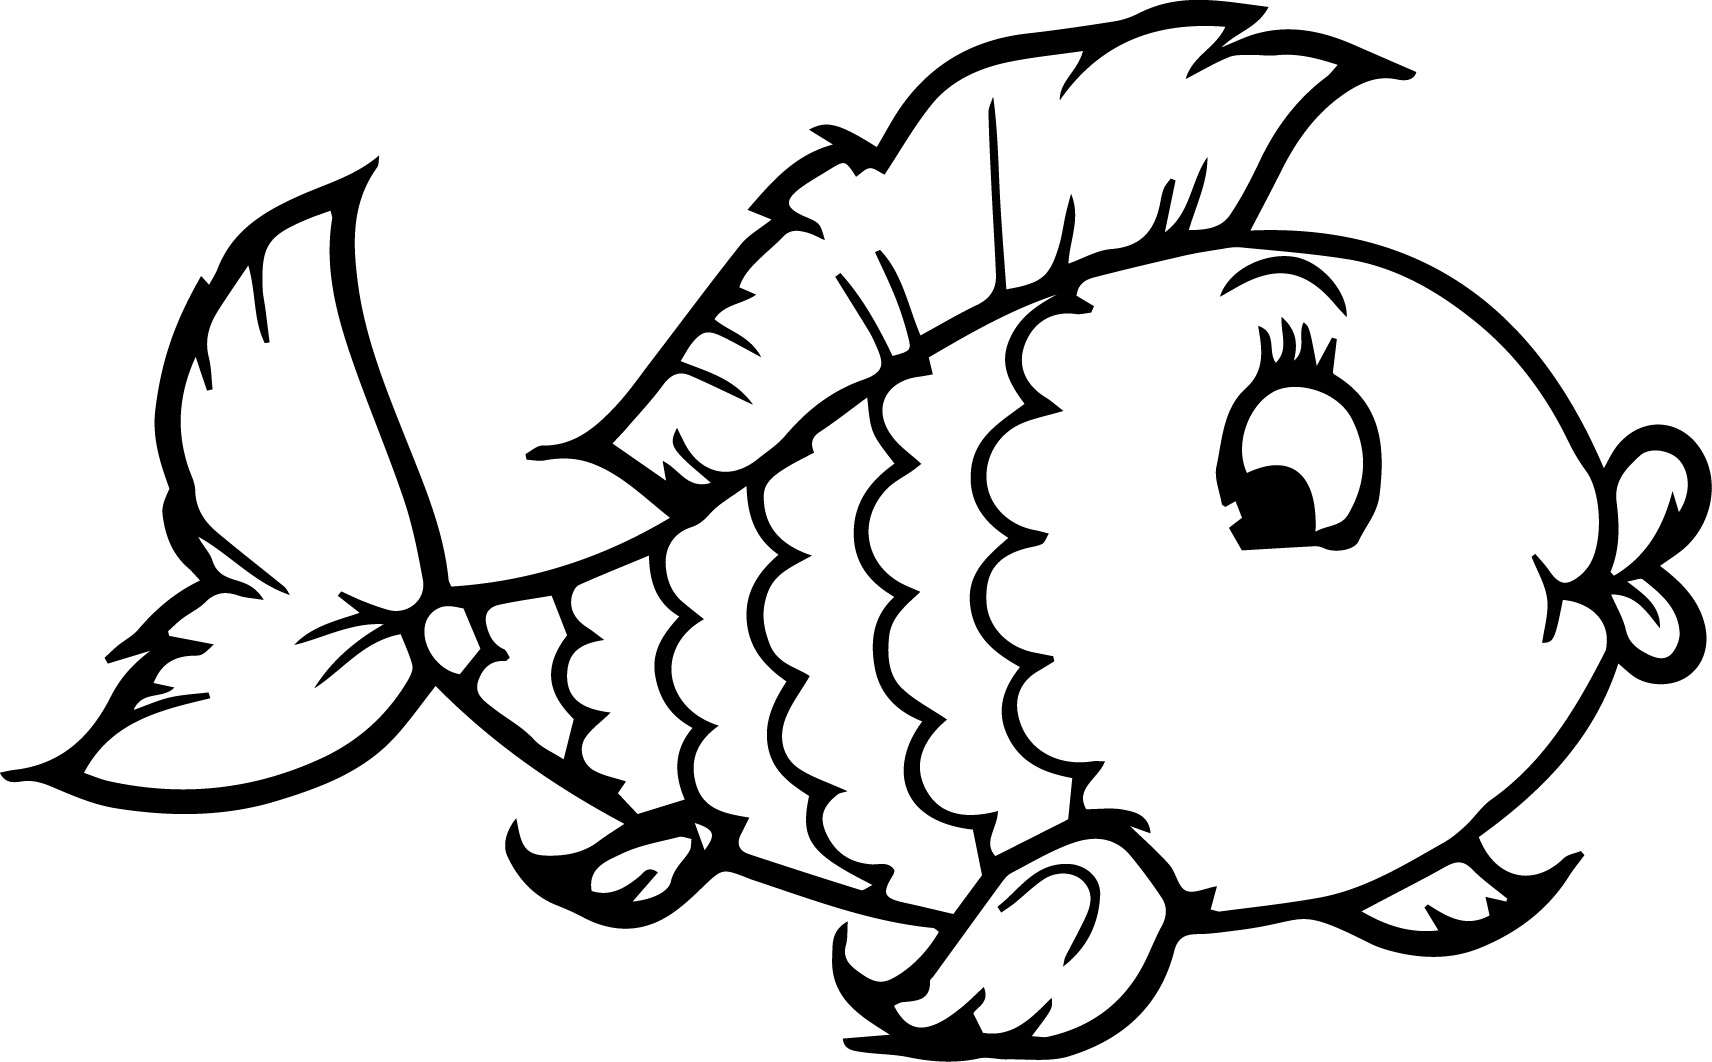 freshwater fish coloring pages - fish drawing images at free for personal